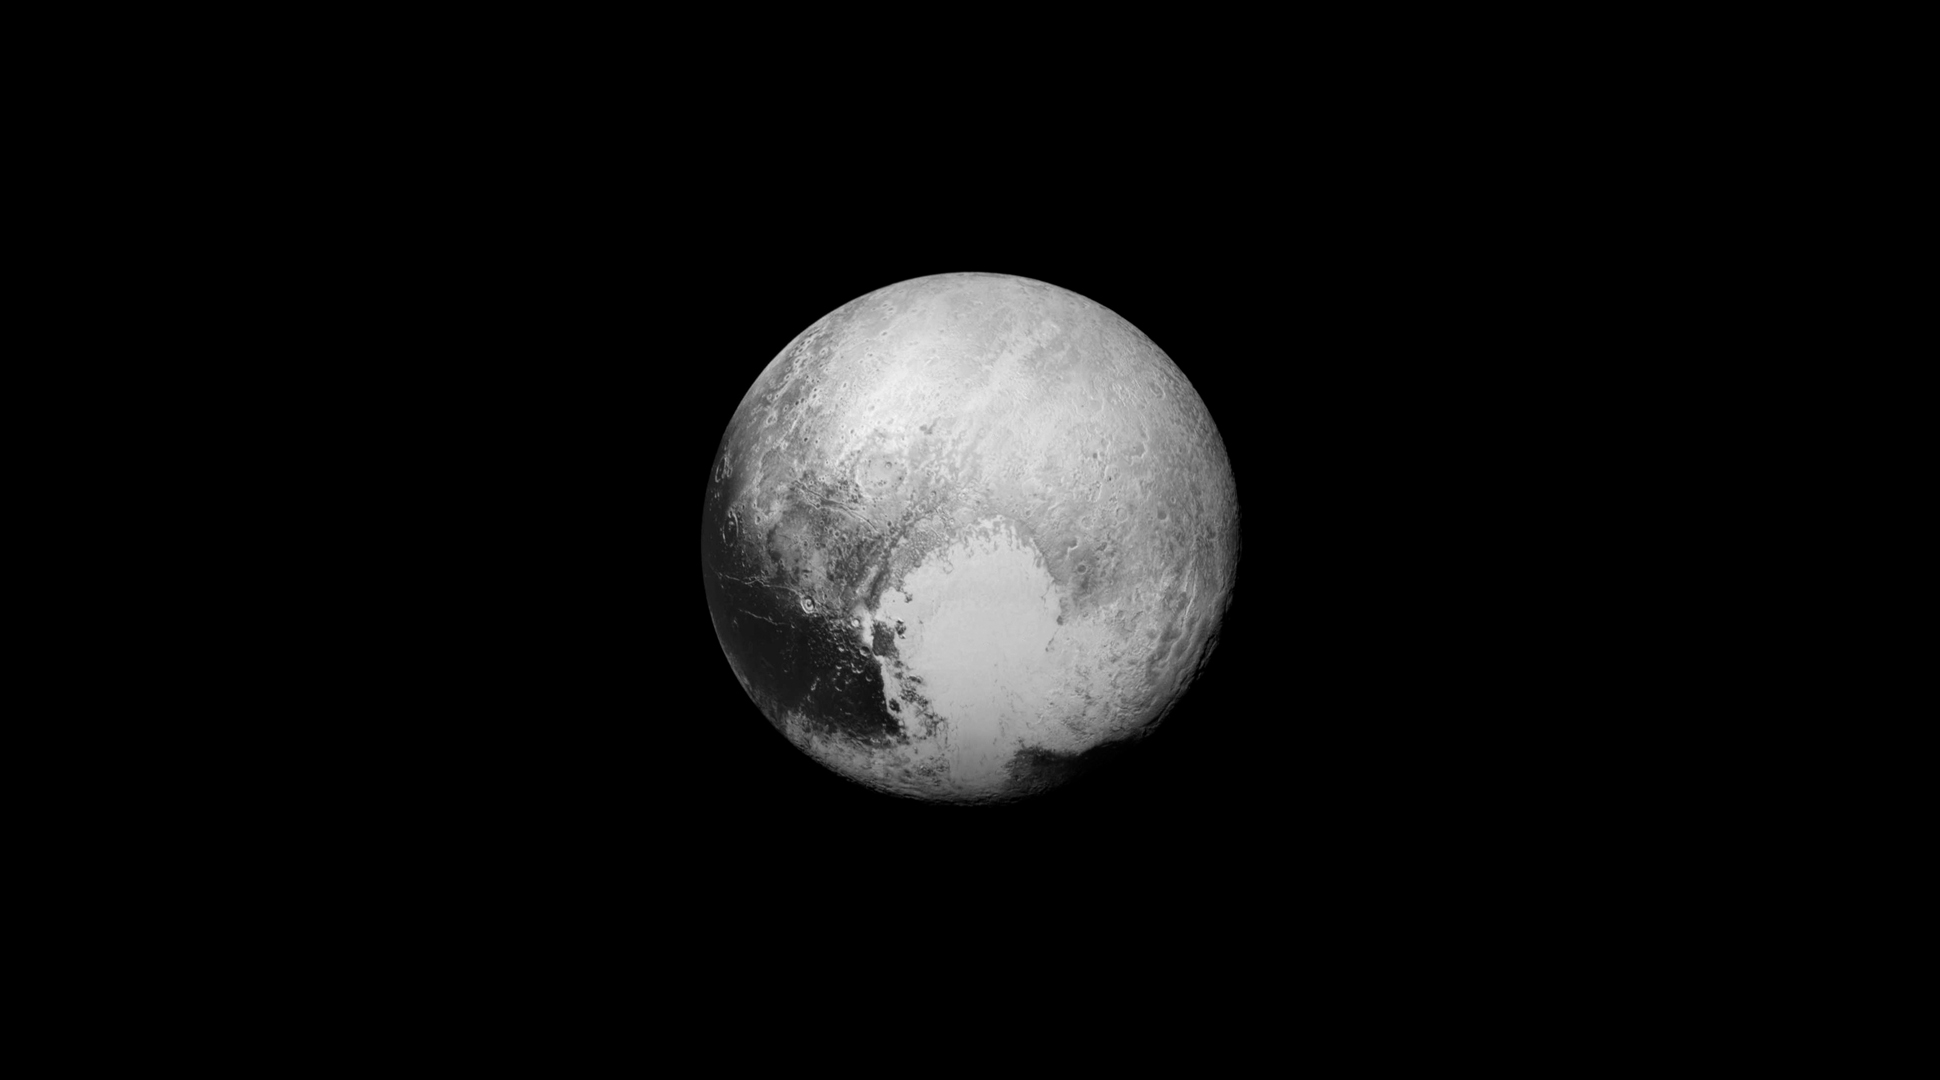 x-1080-Pluto-such-a-strong-image-Followme-CooliPhoneCase-on-Twitter-Facebook-Google-wallpaper-wp3401660